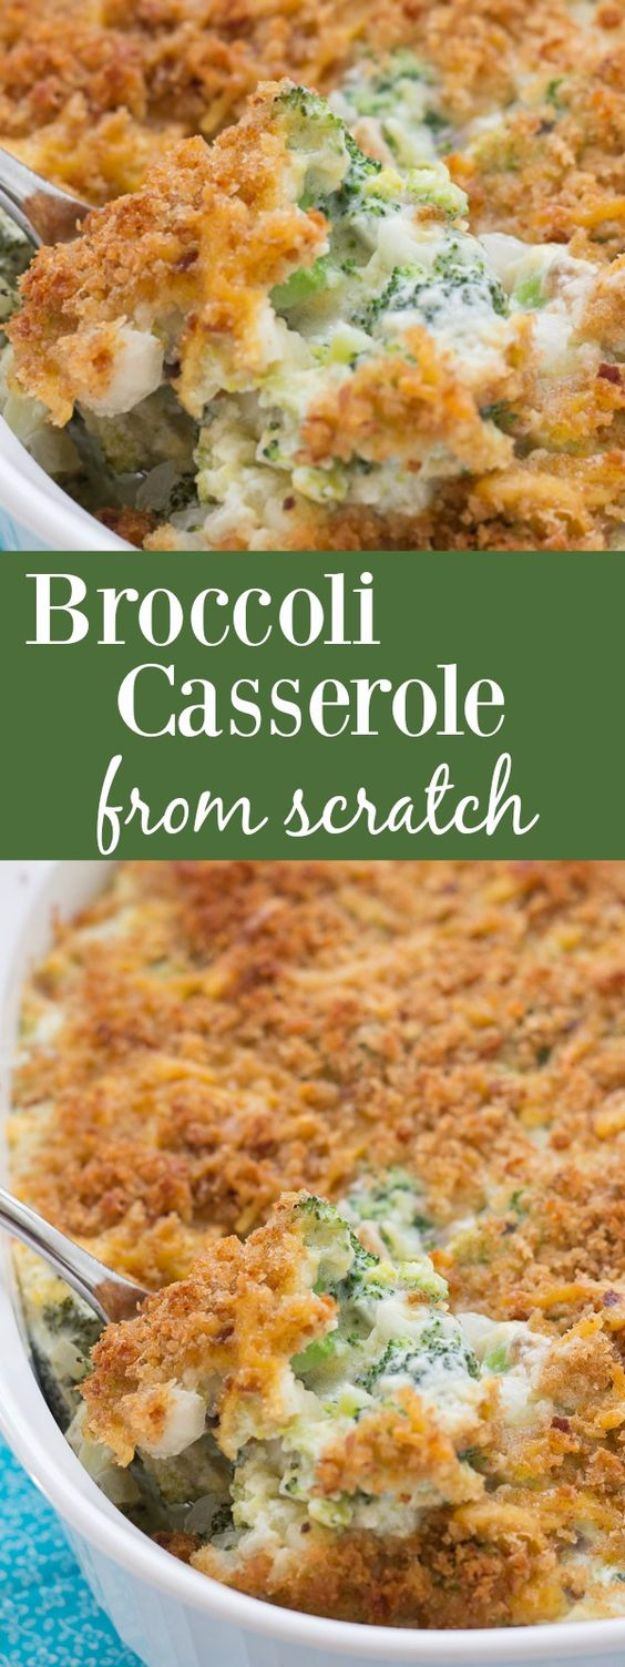 Healthy Thanksgiving Recipes - Broccoli Casserole - Low fat Versions of Your Favorite Holiday Recipe for Turkey, Stuffing, Gravy, Pie and Desserts, Appetizers, Vegetables and Side Dishes like Spinach, Broccoli, Cranberries, Mashed Potatoes, Sweet Potatoes and Green Beans - Easy and Quick Last Minute Thanksgiving Recipes for Low Carb, Low Fat and Clean Eating Diets http://diyjoy.com/healthy-thanksgiving-recipes